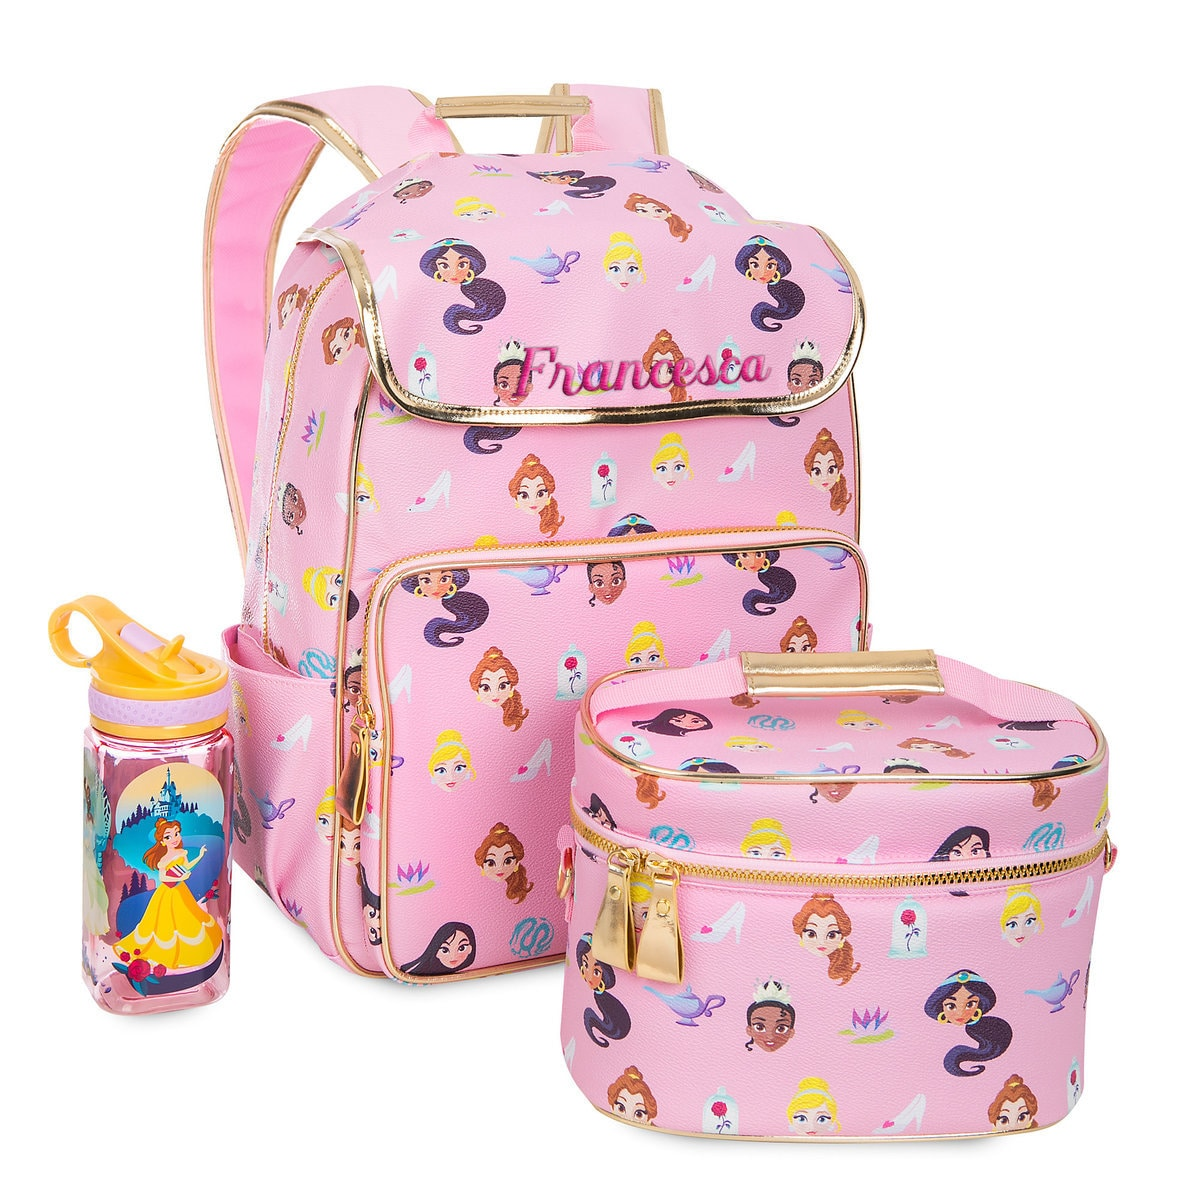 14afe015972 Product Image of Disney Princess Backpack - Personalizable   2